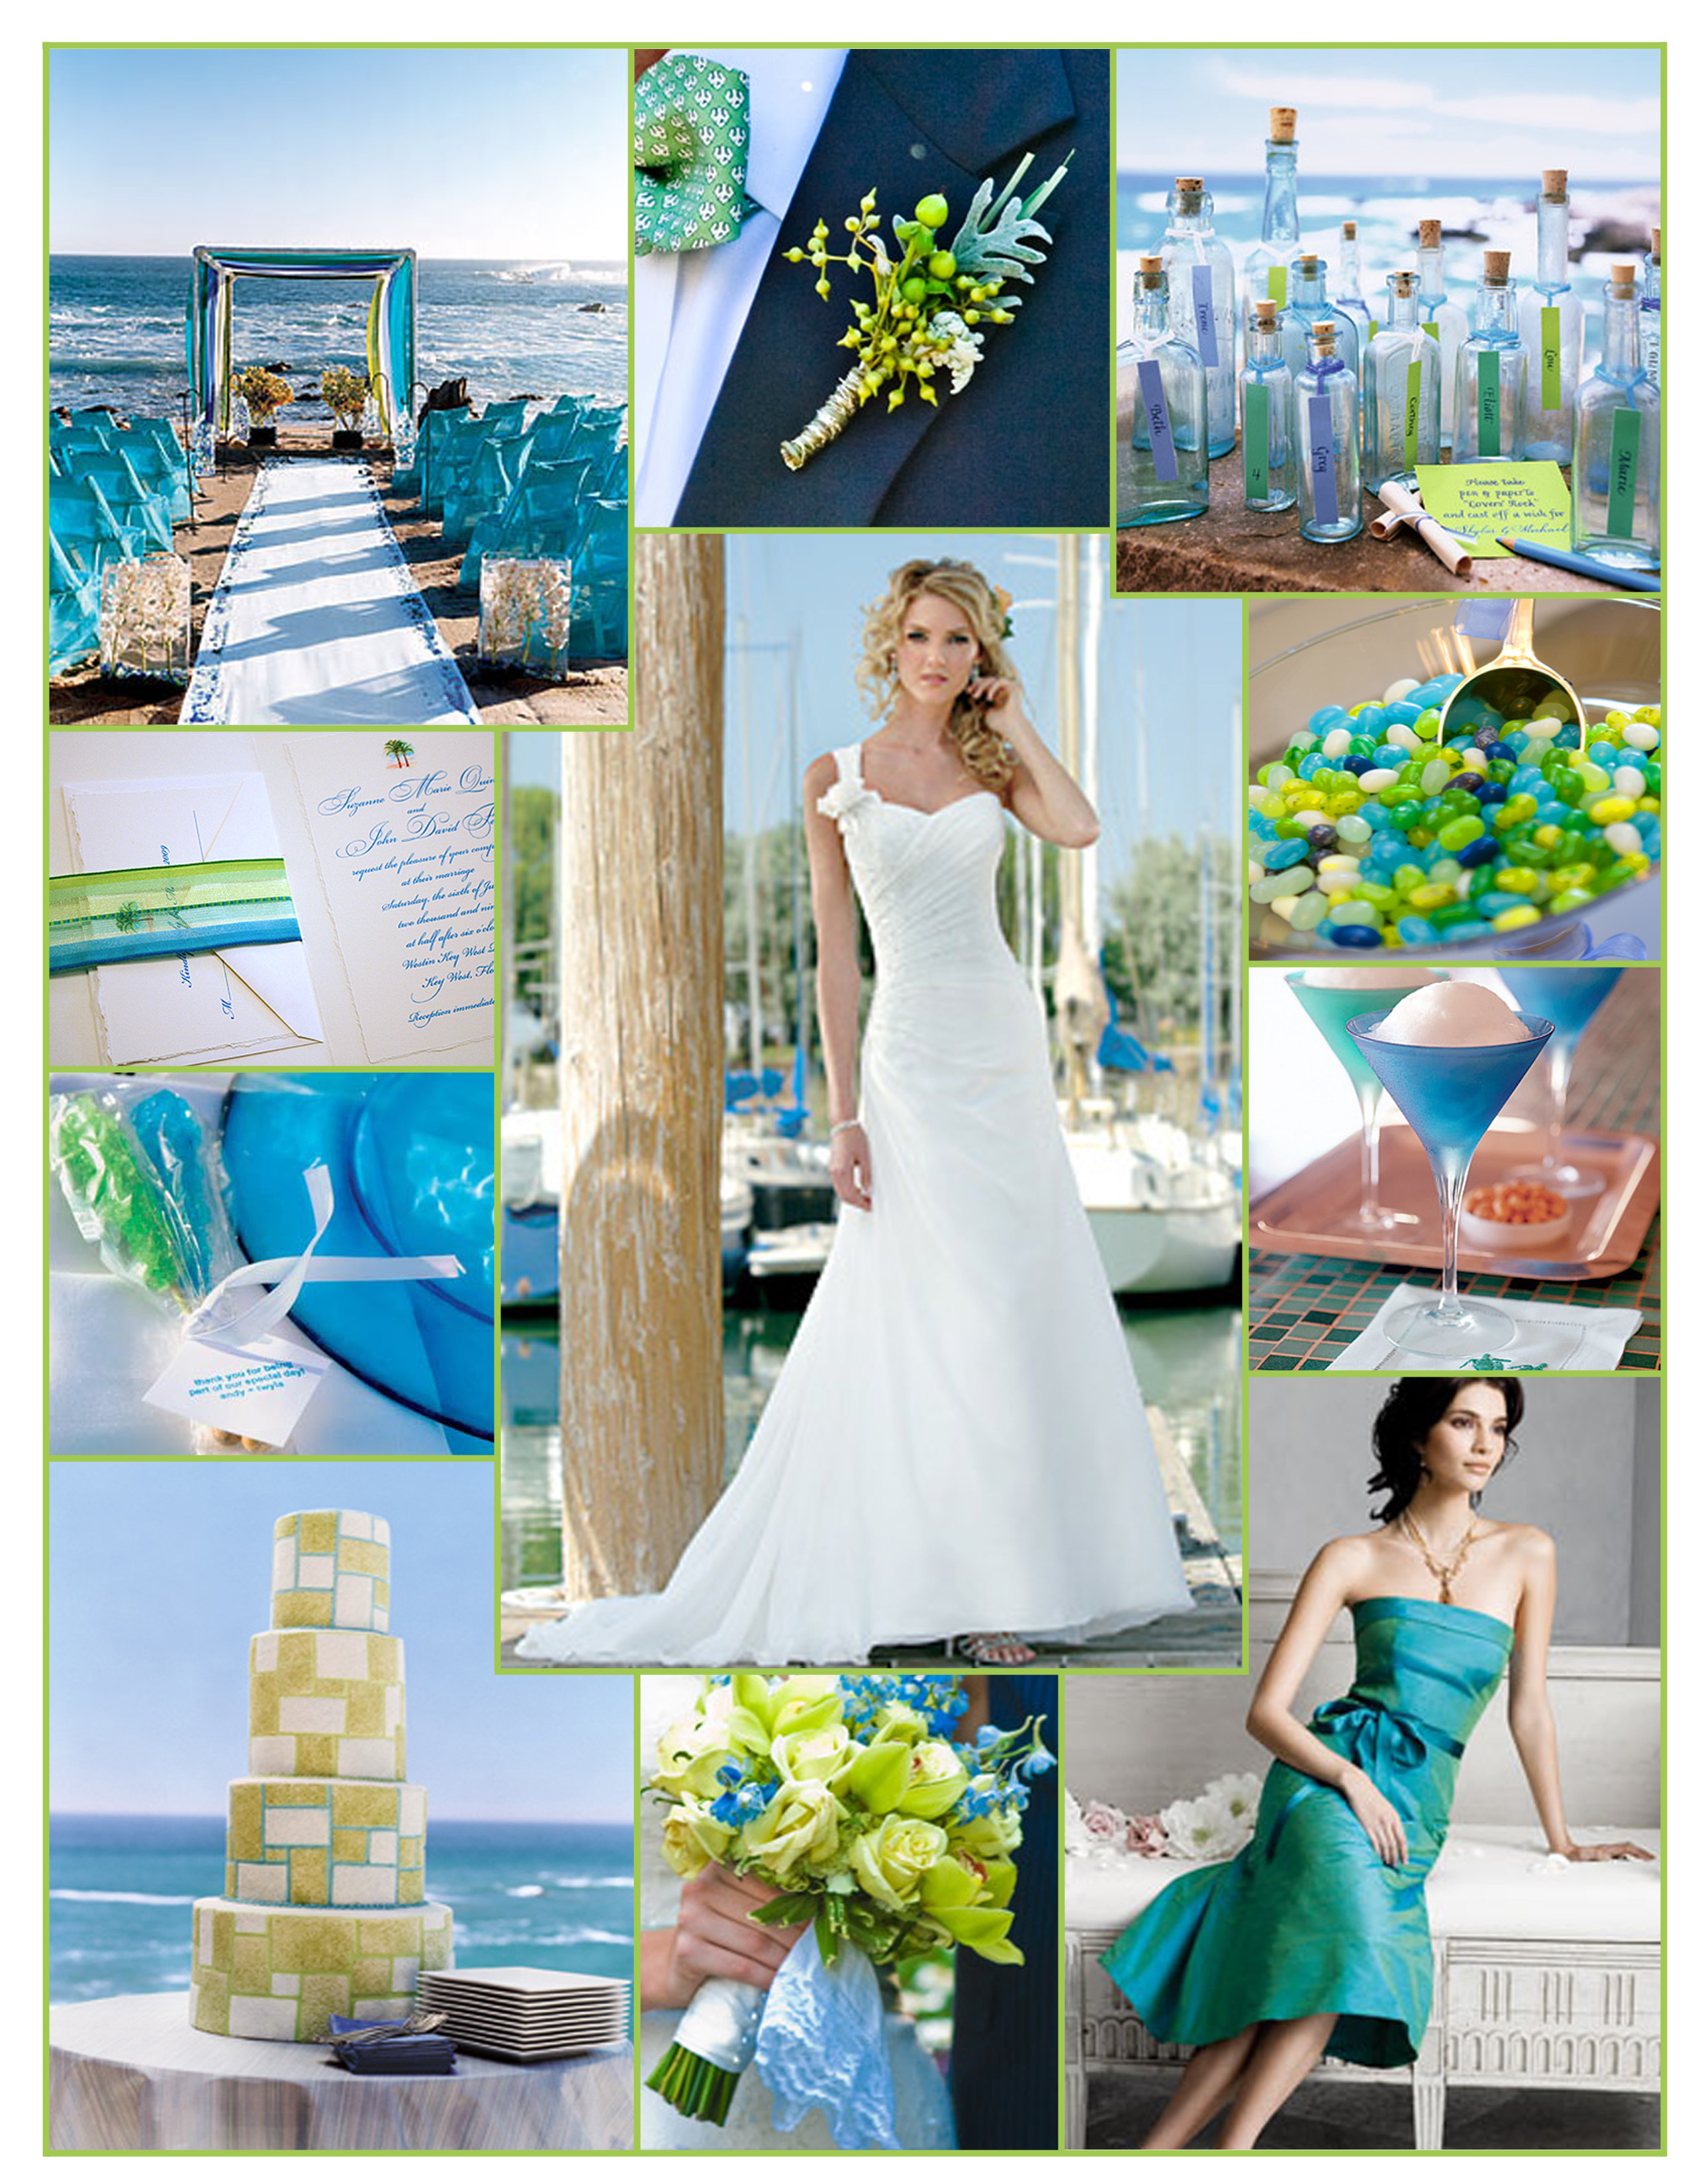 Inspiration, blue, green, Lime, Board, Seaside, Jim hjelm occasions, Destinations by maggie sottero